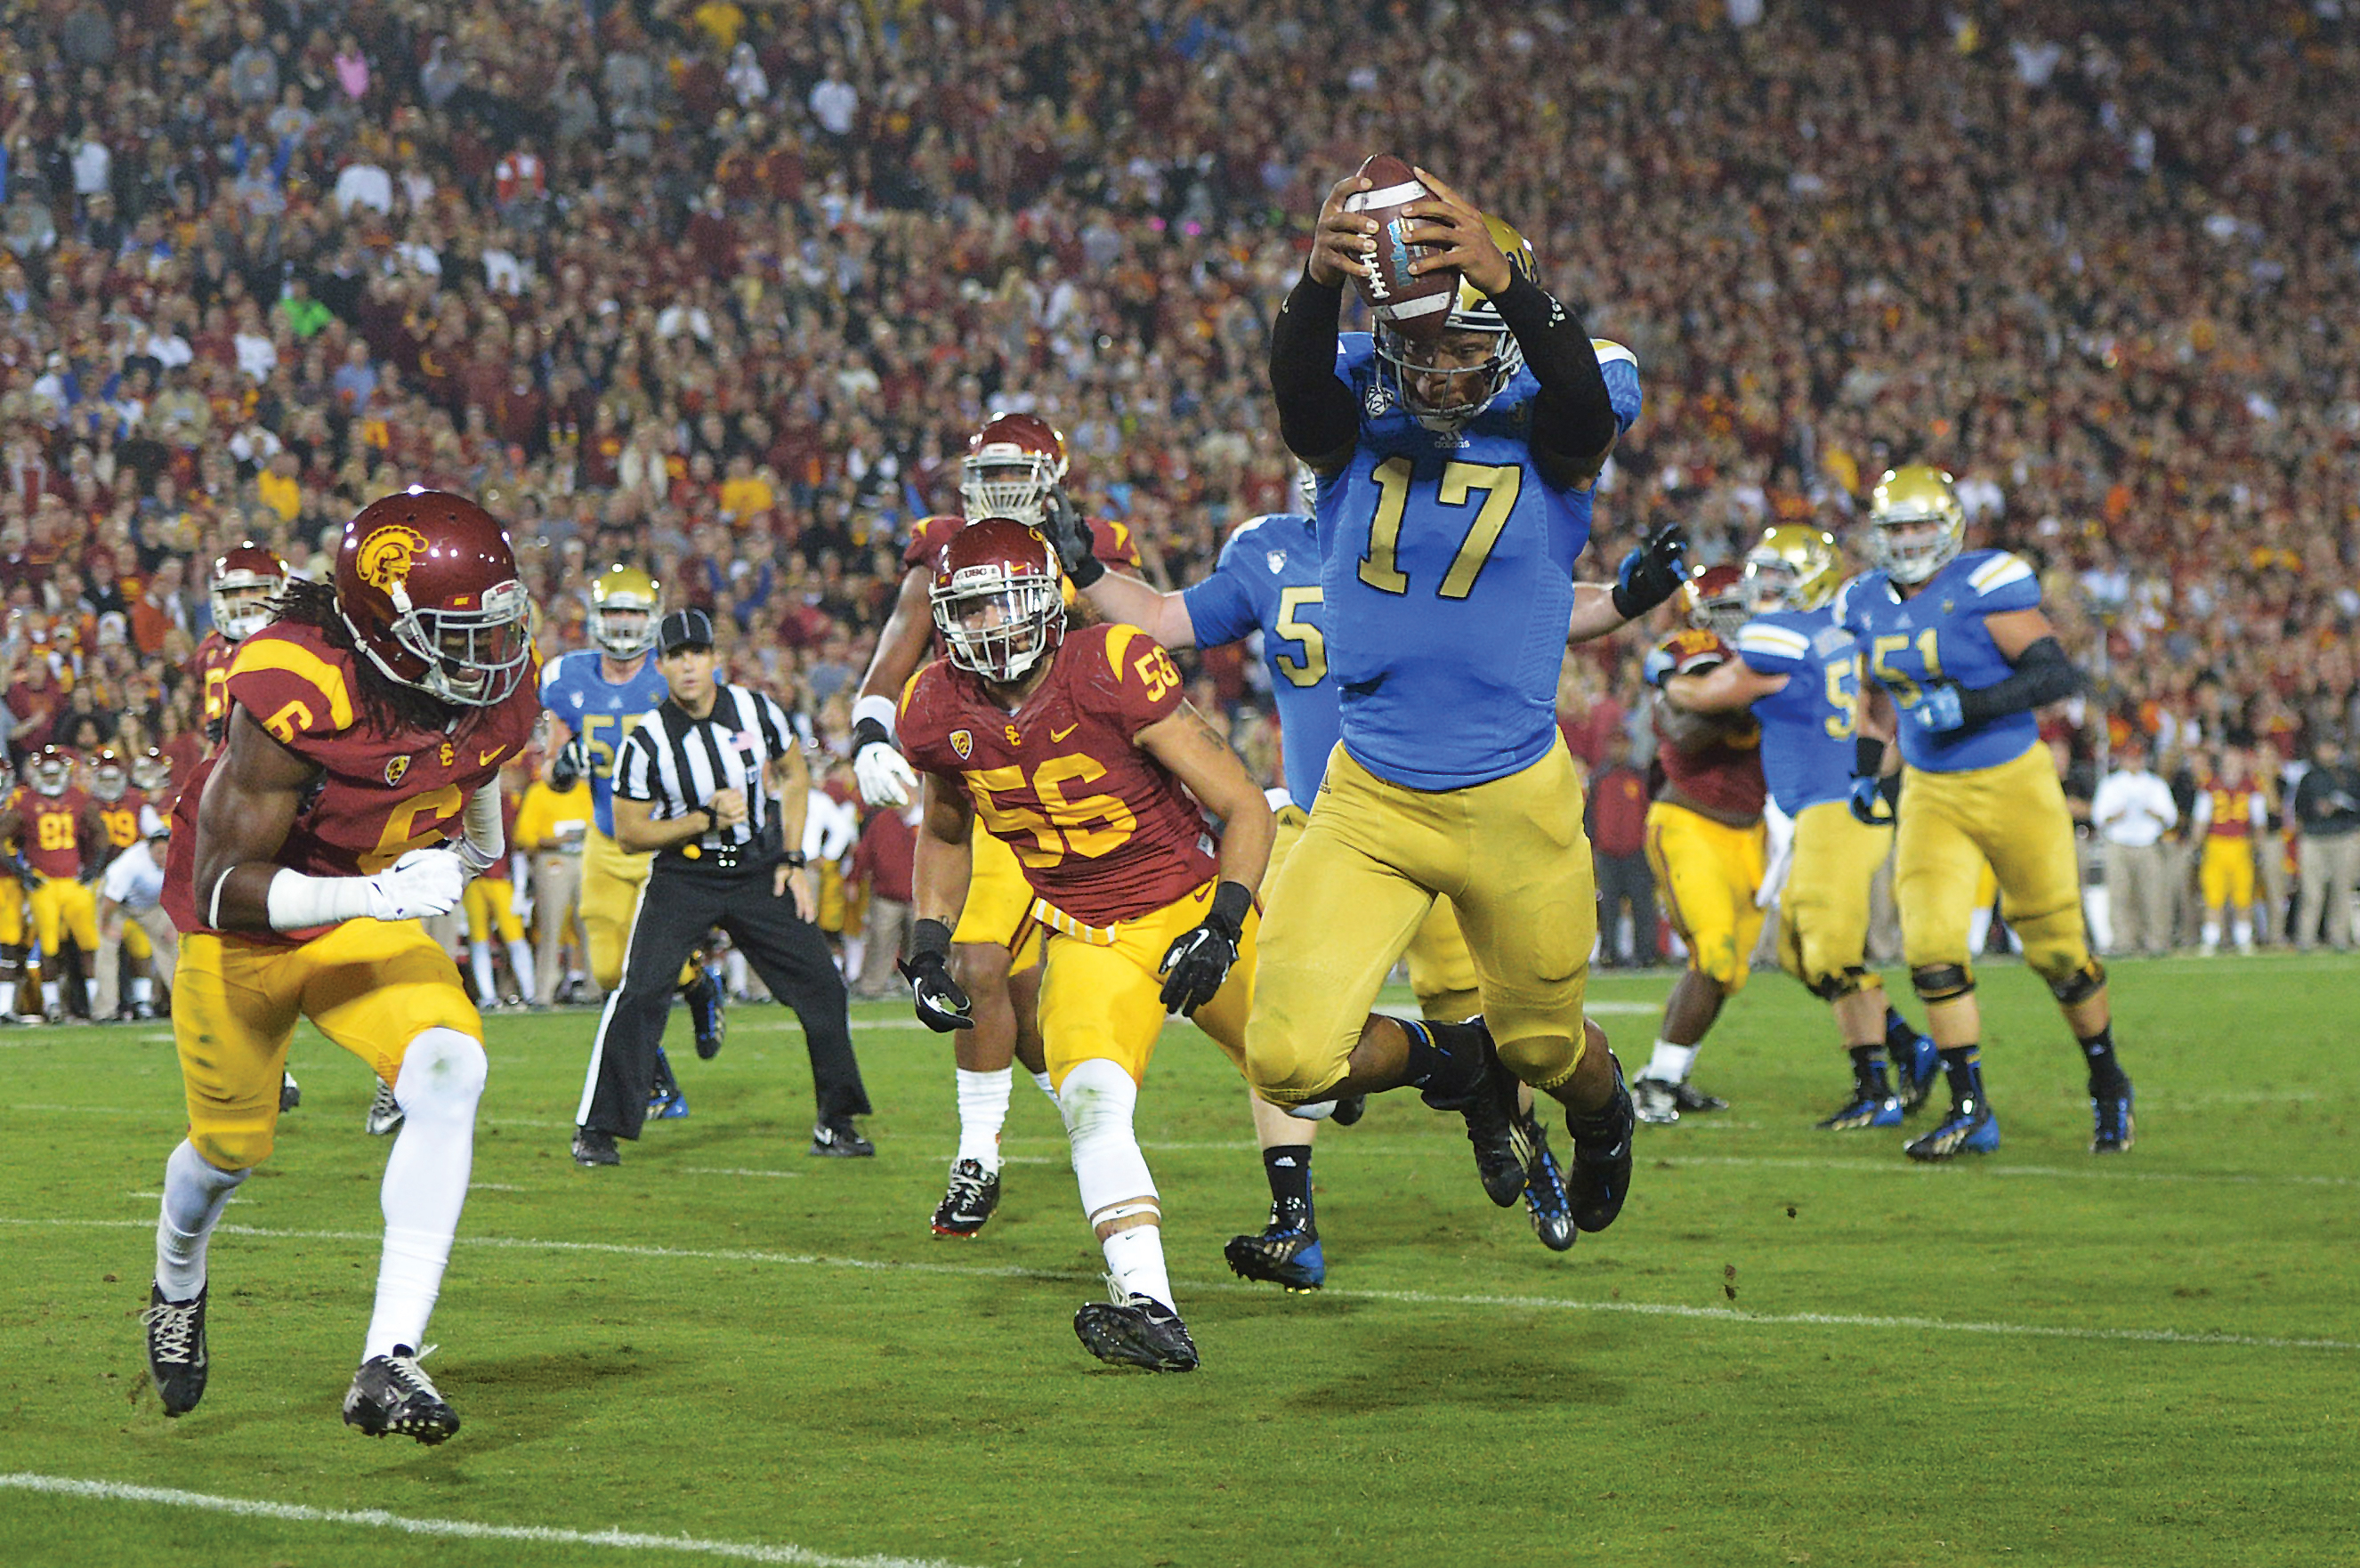 USC vs. UCLA: A Cardinal and Gold Against Blue and Gold ...